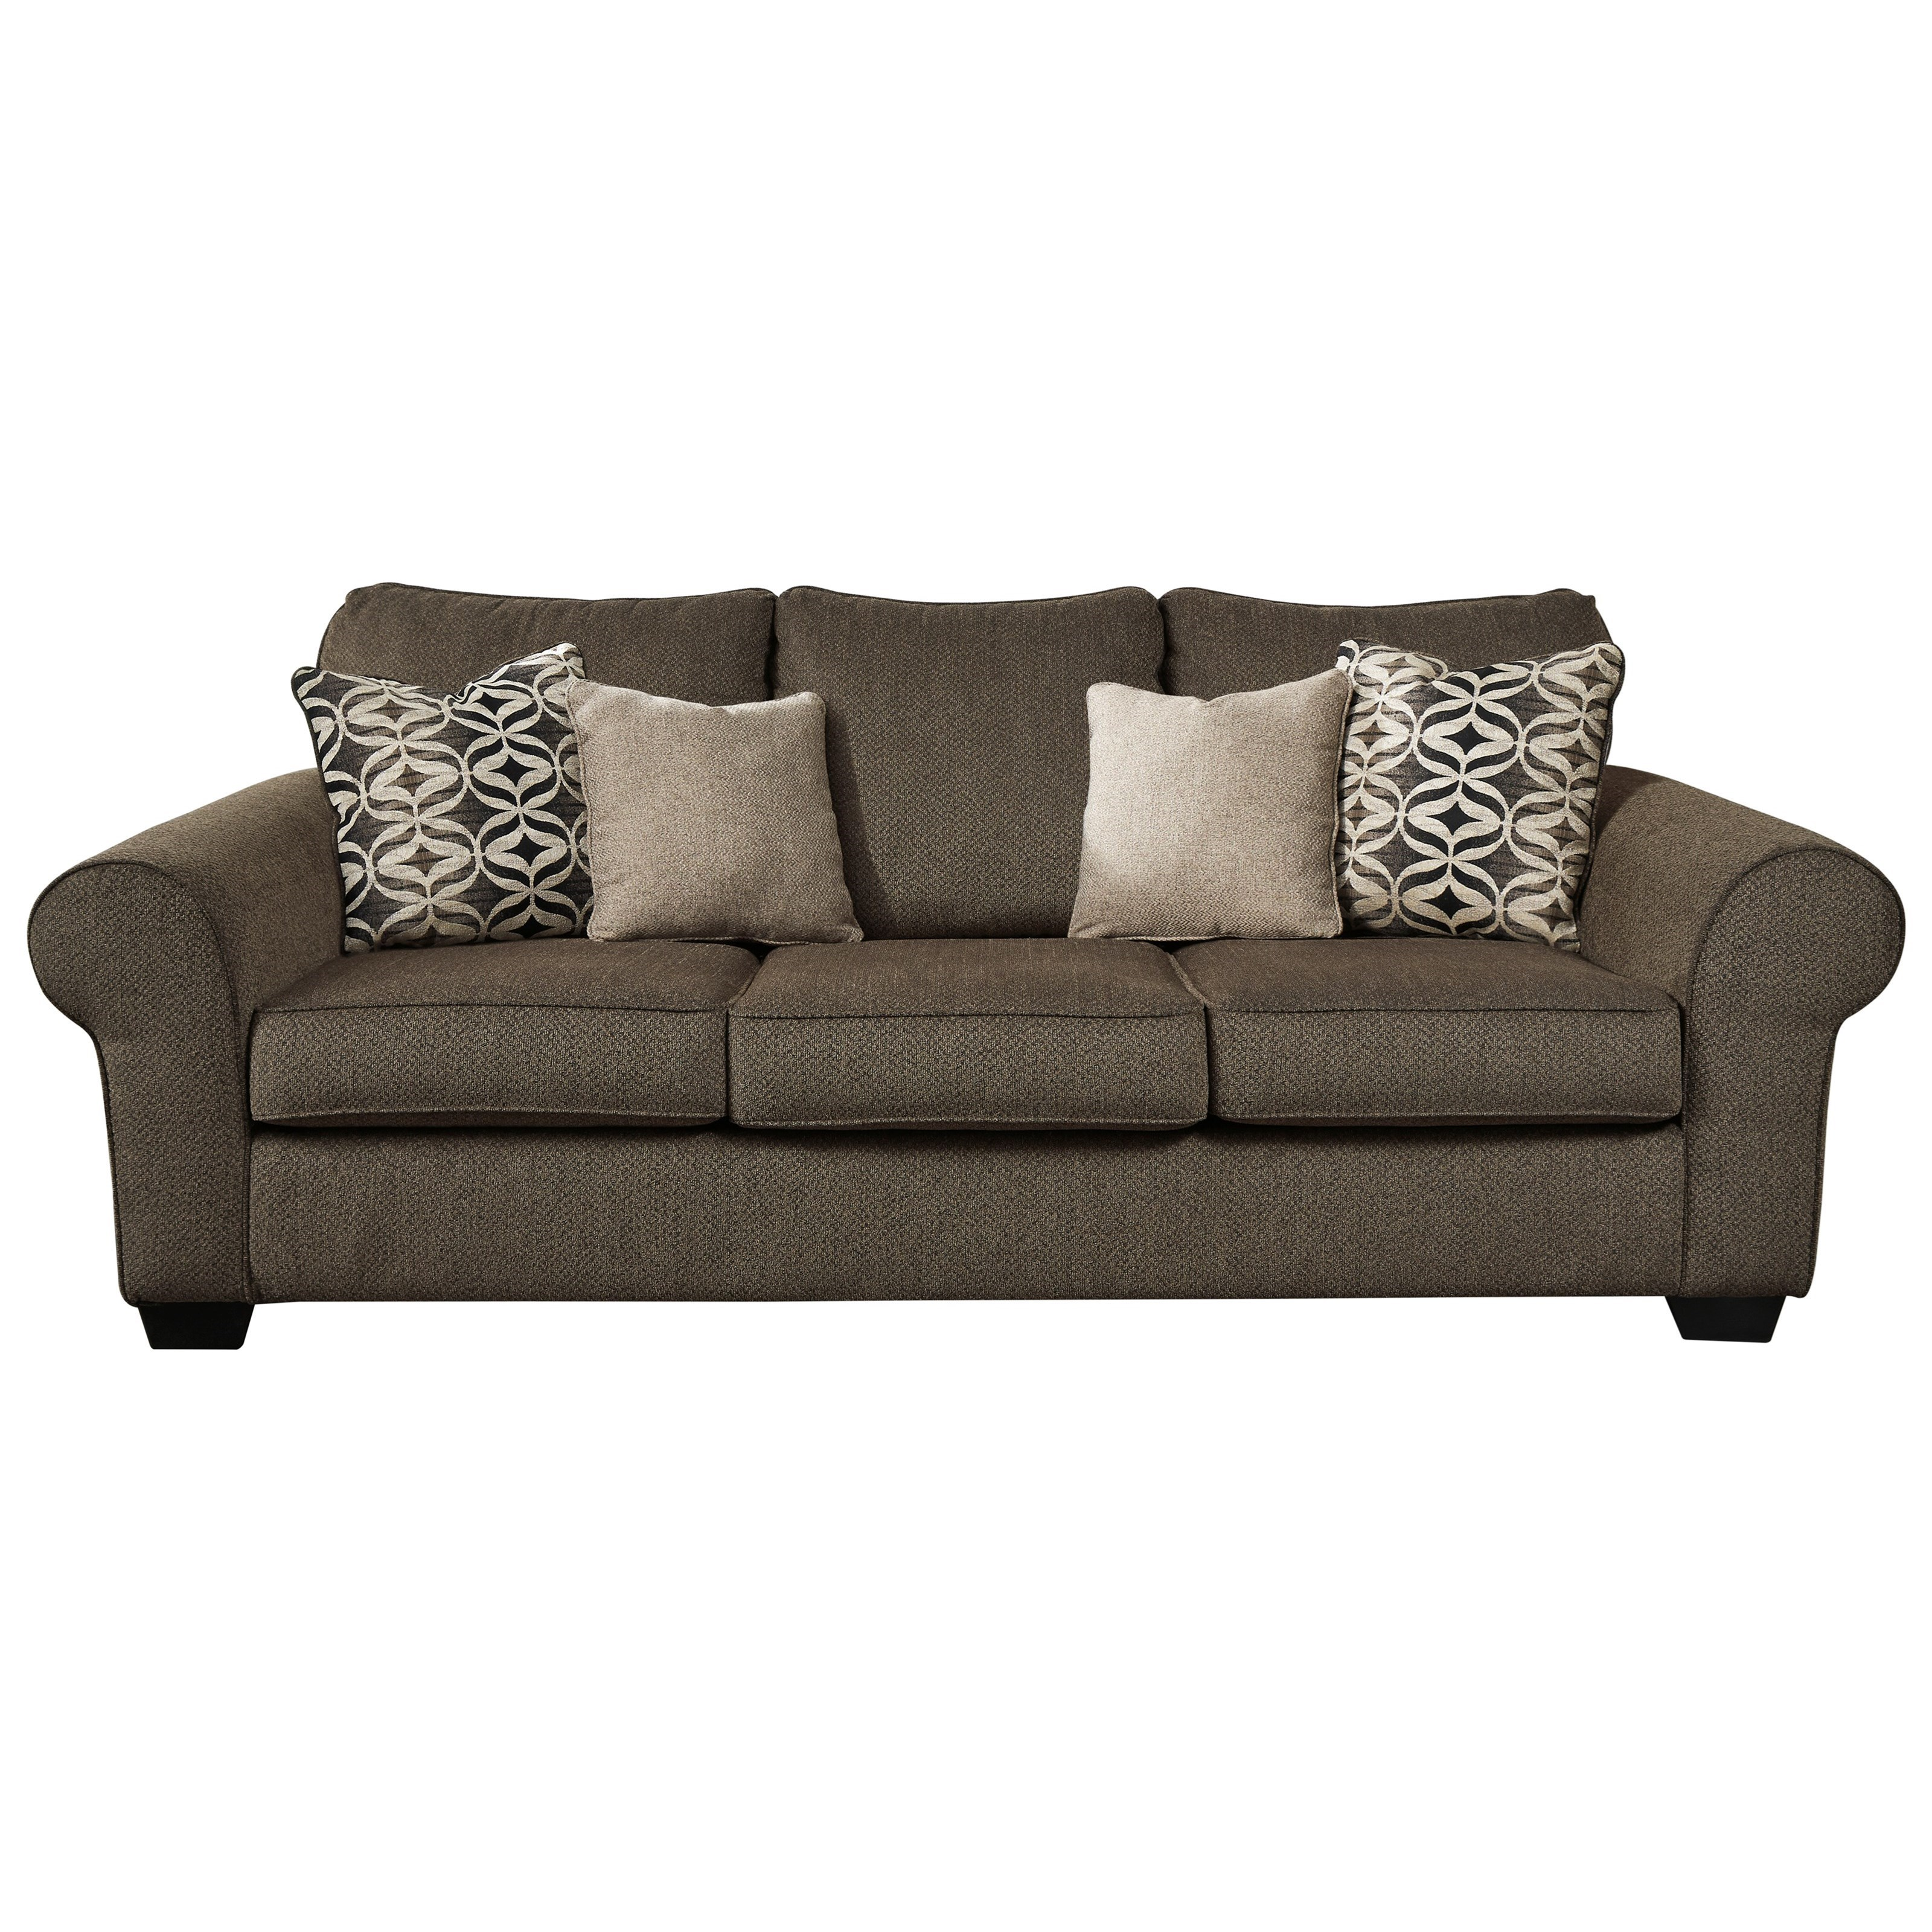 Nesso Sofa by Benchcraft at Walker's Furniture